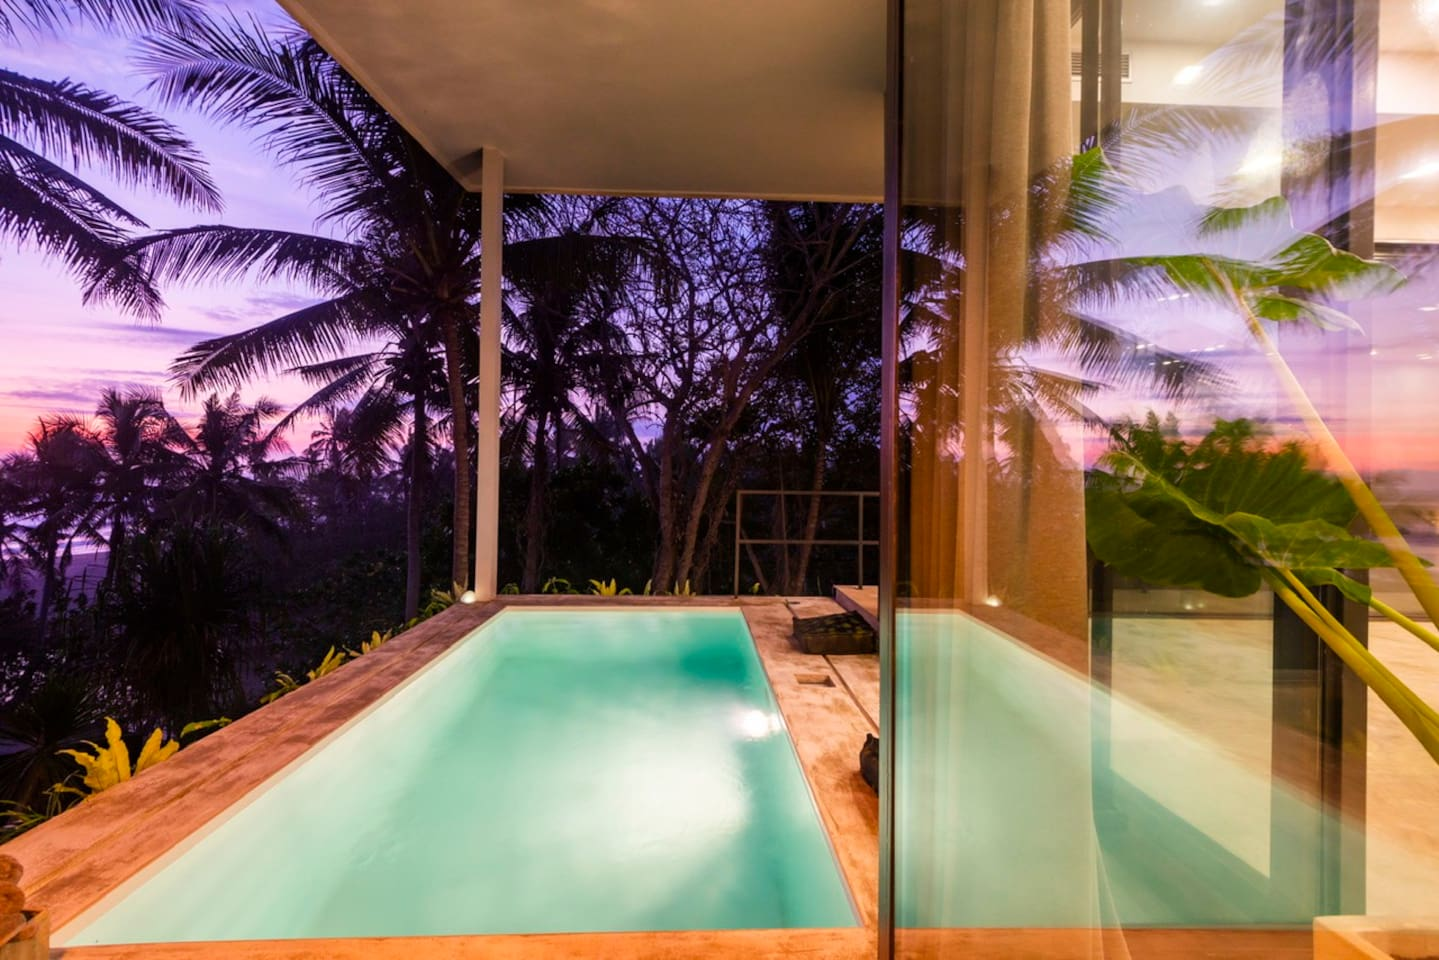 Swimming pool with a view right on the ocean and an amazing sunset